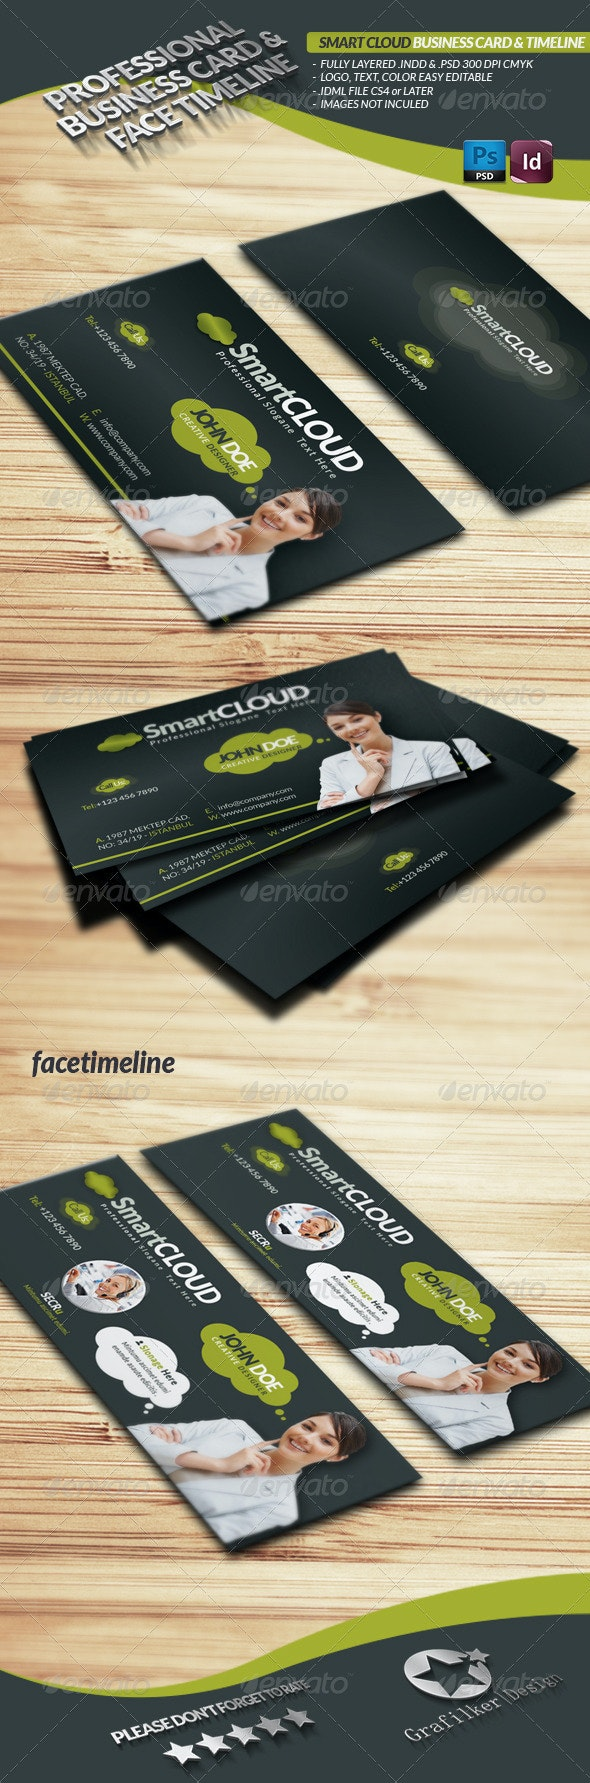 Smart Cloud Business Card Face Timeline - Corporate Business Cards